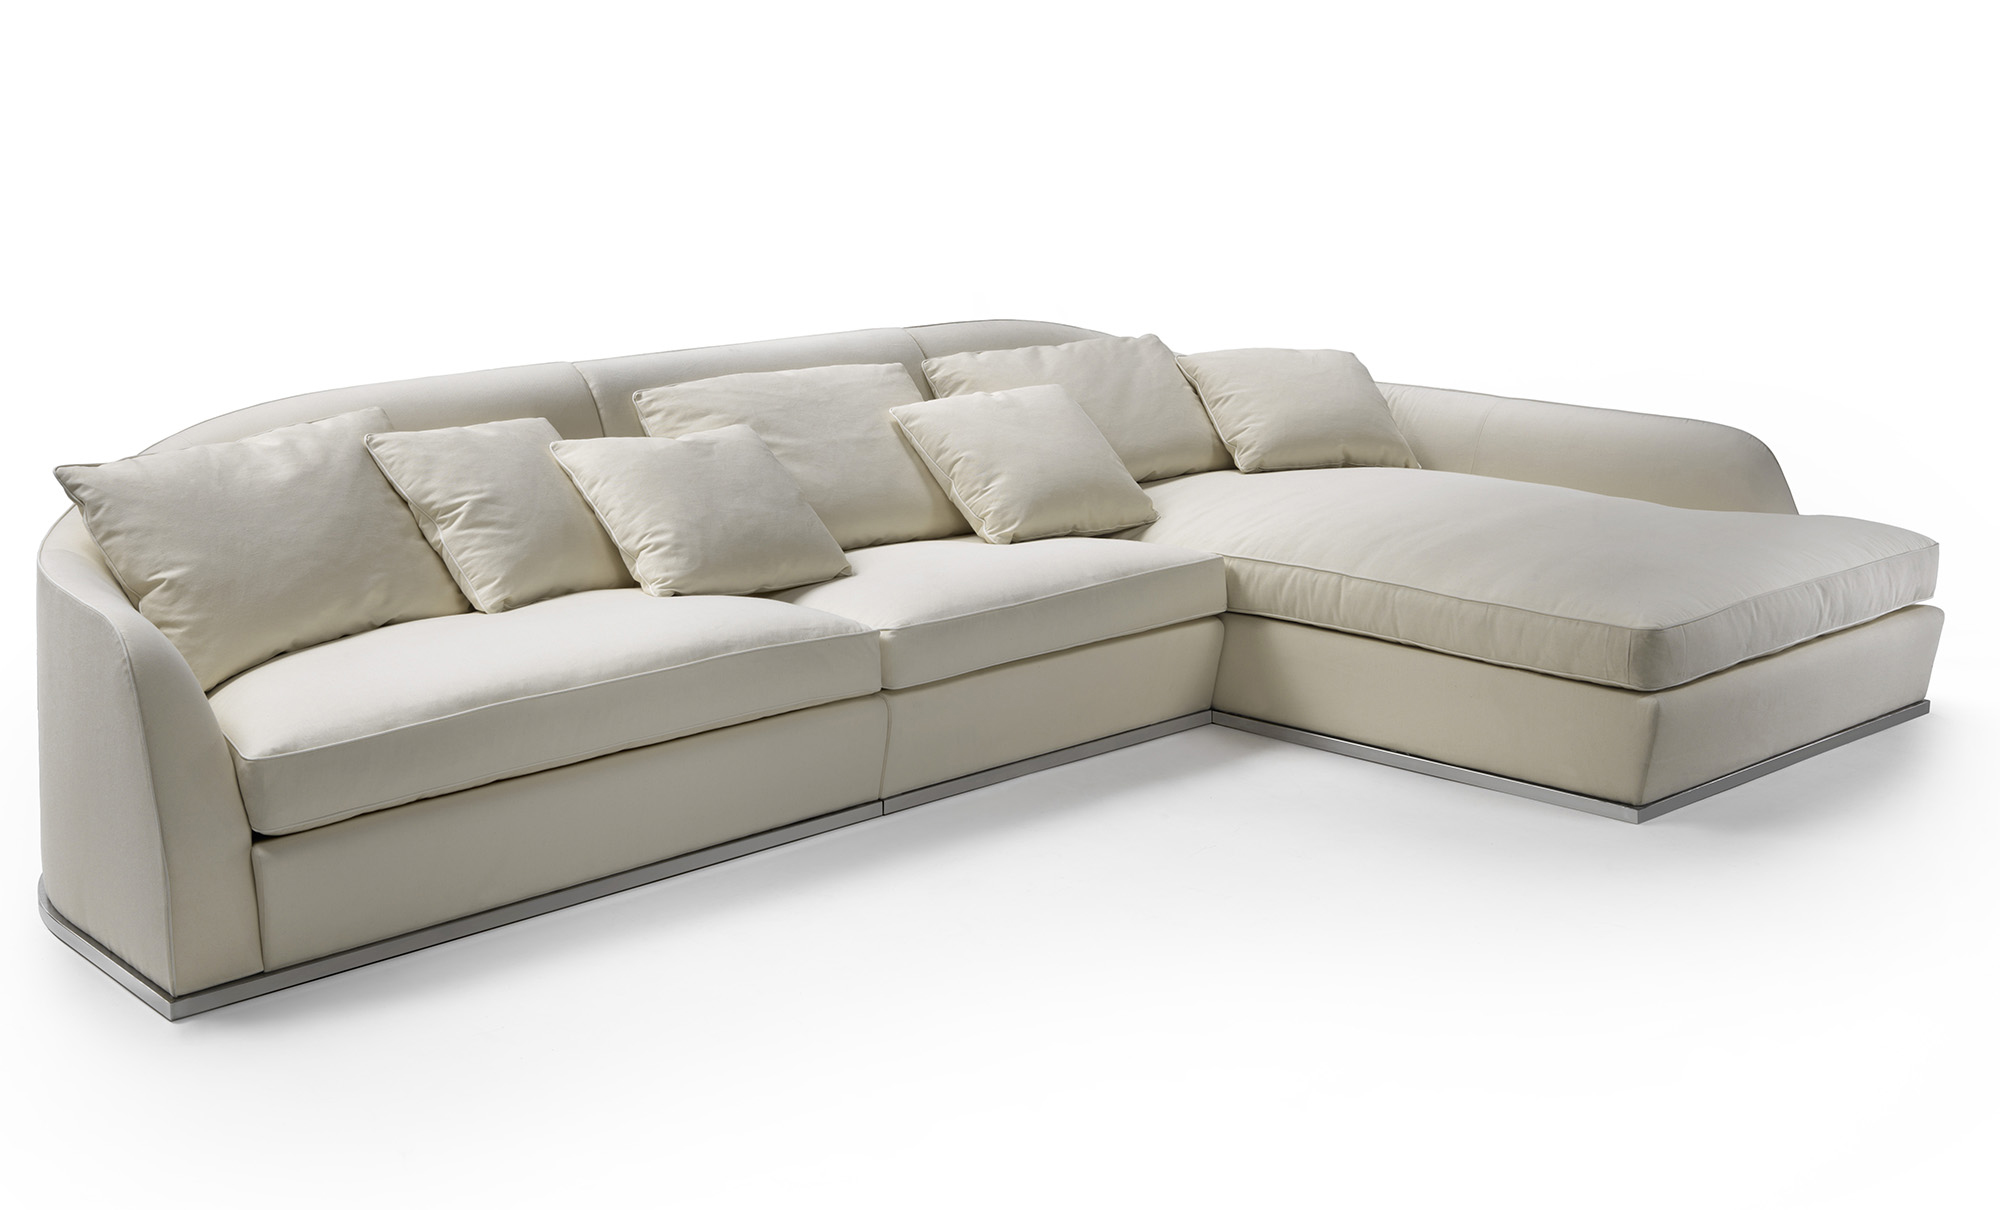 Alfred modular sofa fanuli furniture for Sofa for